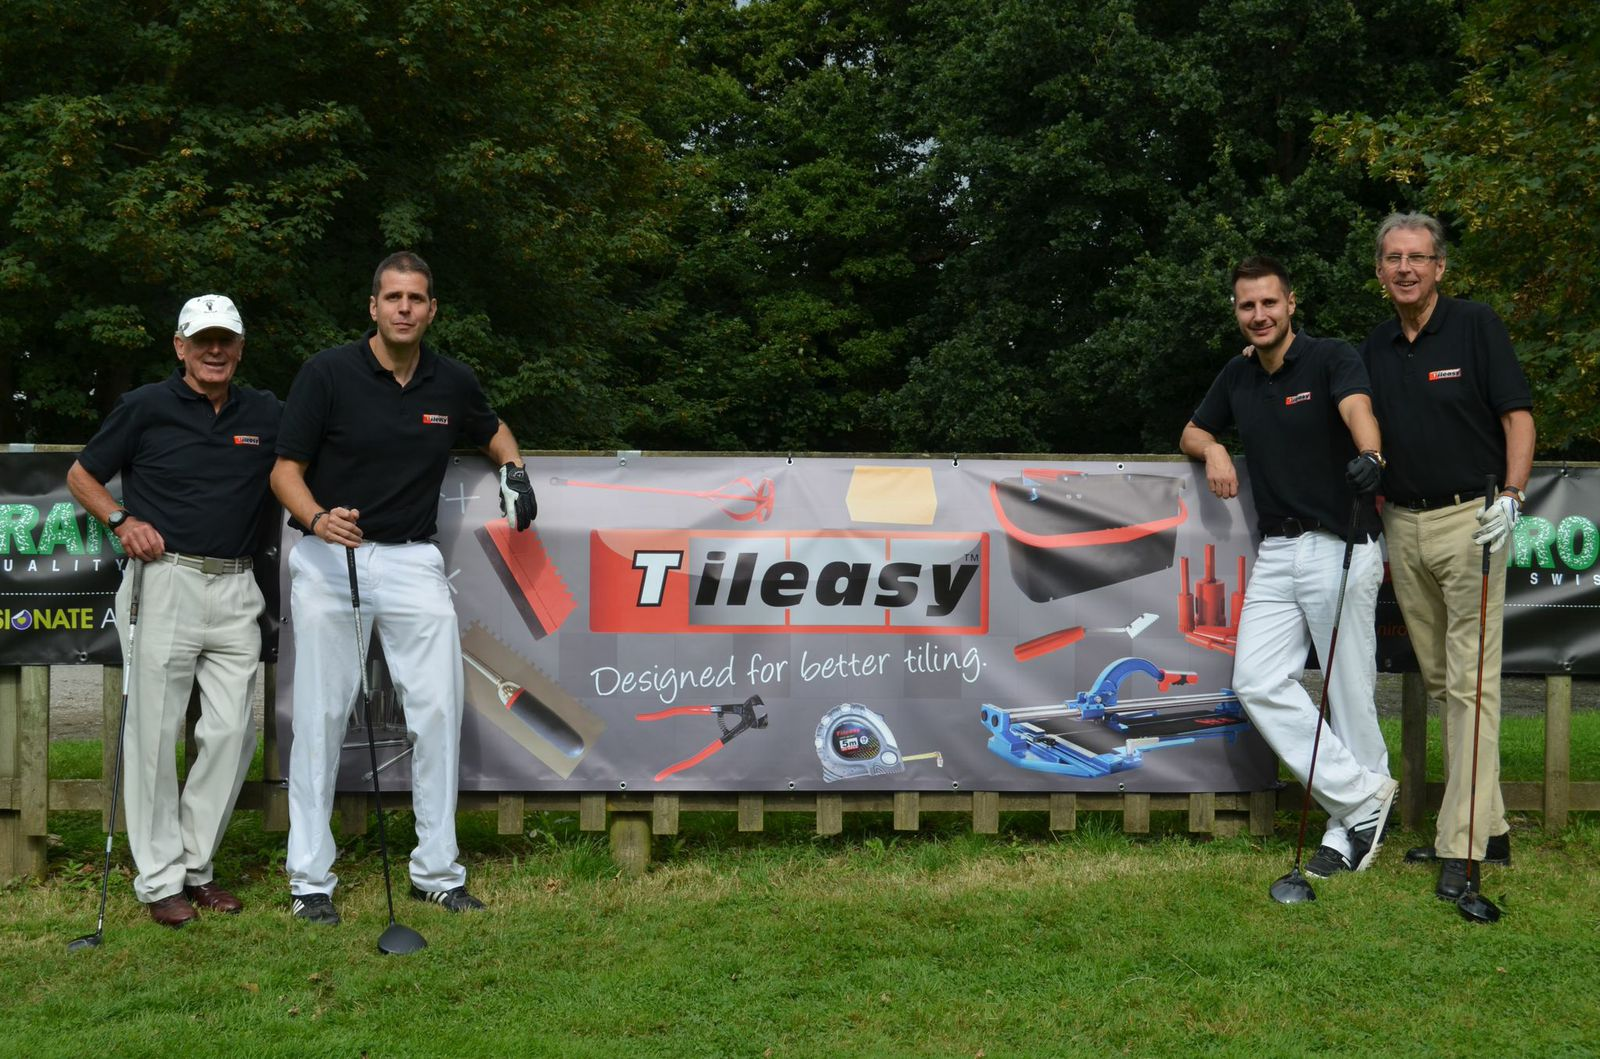 Tileasy and Tile Giant Golf Day